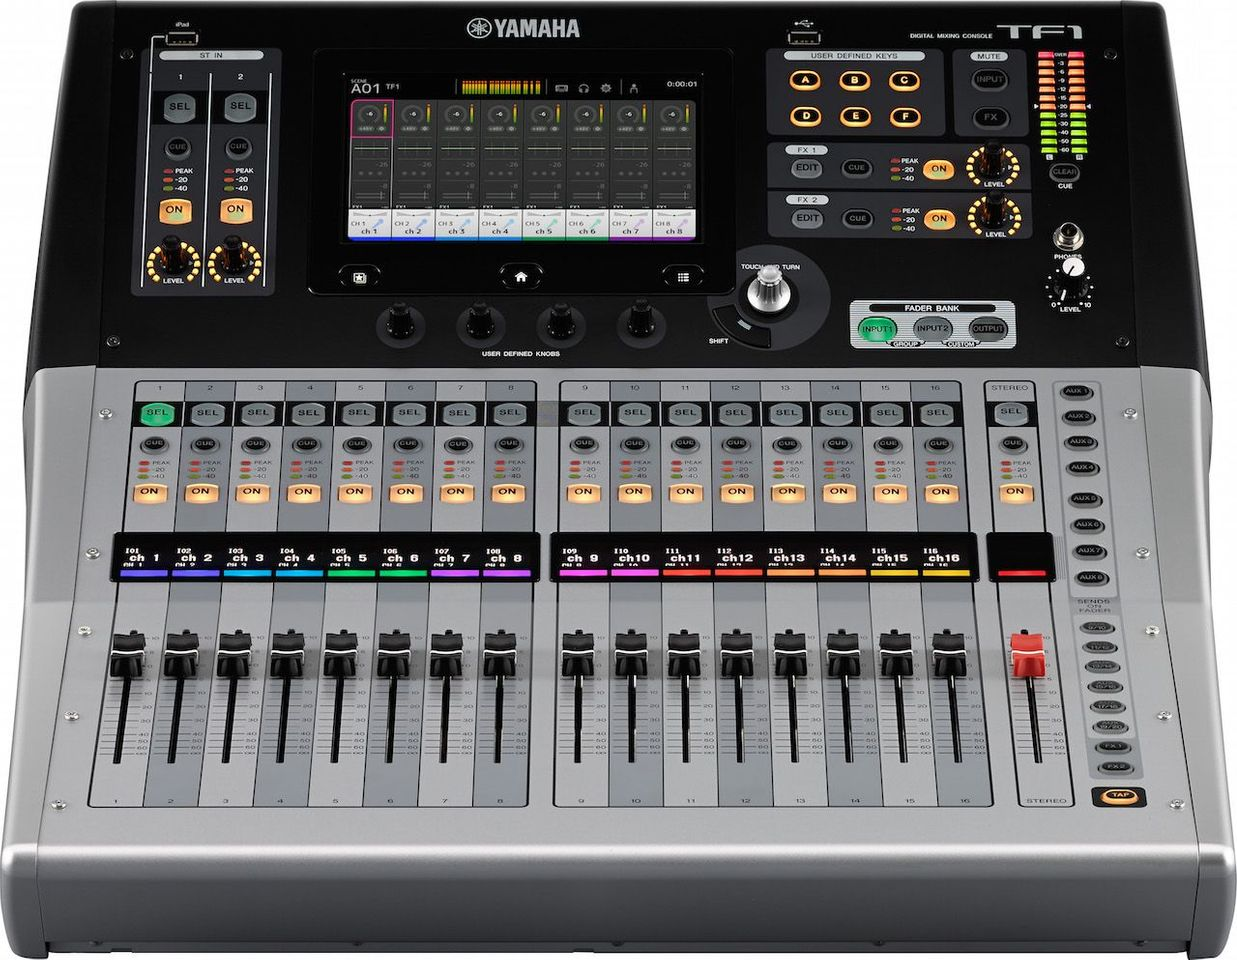 The Yamaha TF1 Digital Mixing Console at Hollywood Sound Systems